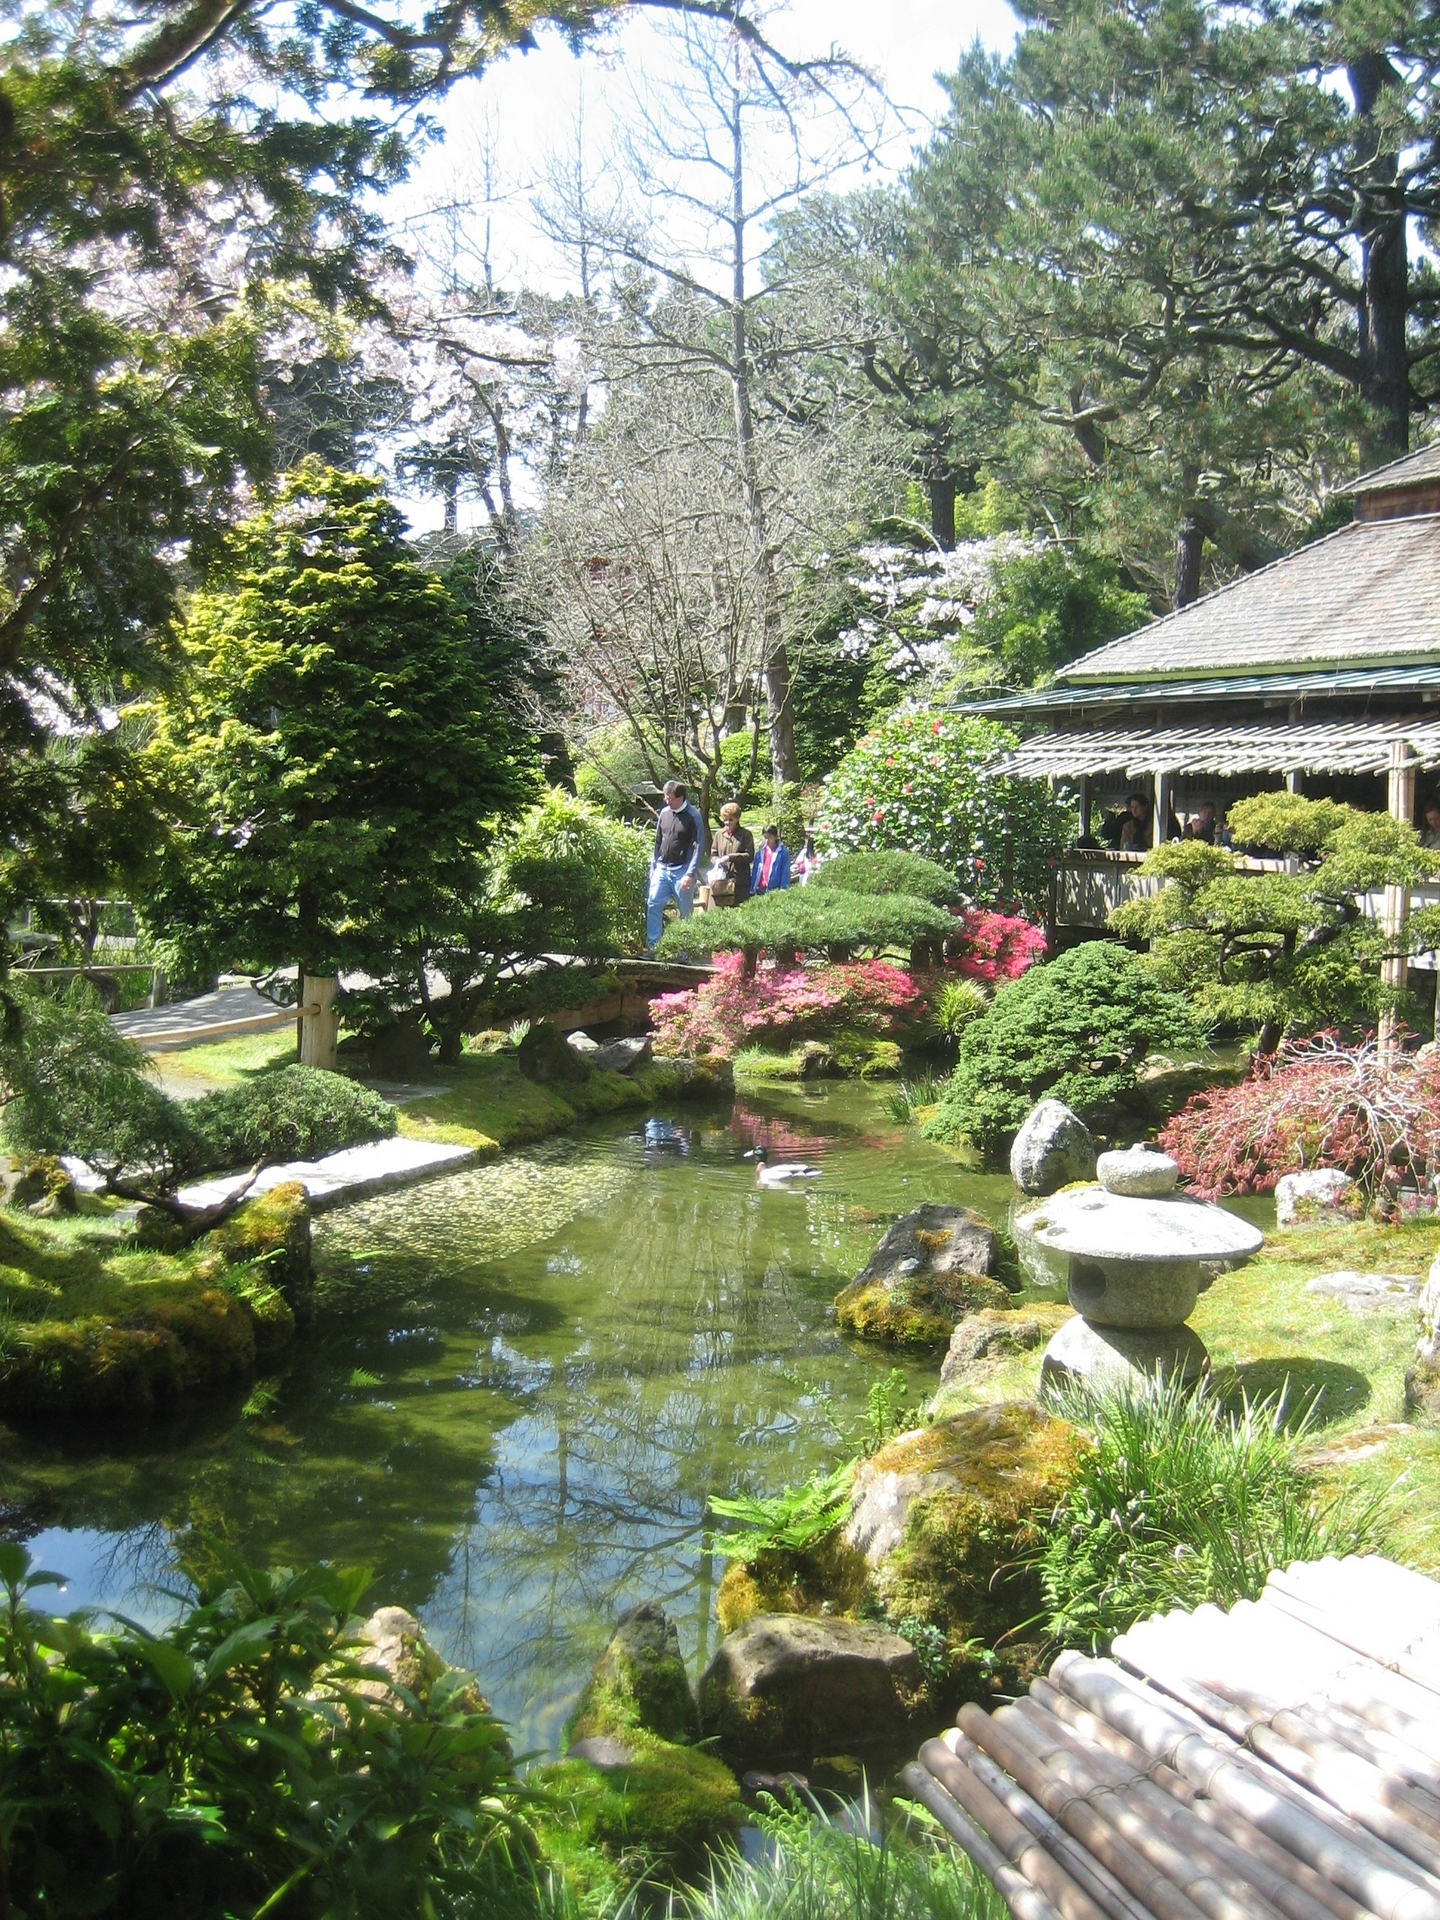 San francisco images japanese tea garden hd wallpaper and - Japanese tea garden san francisco ...